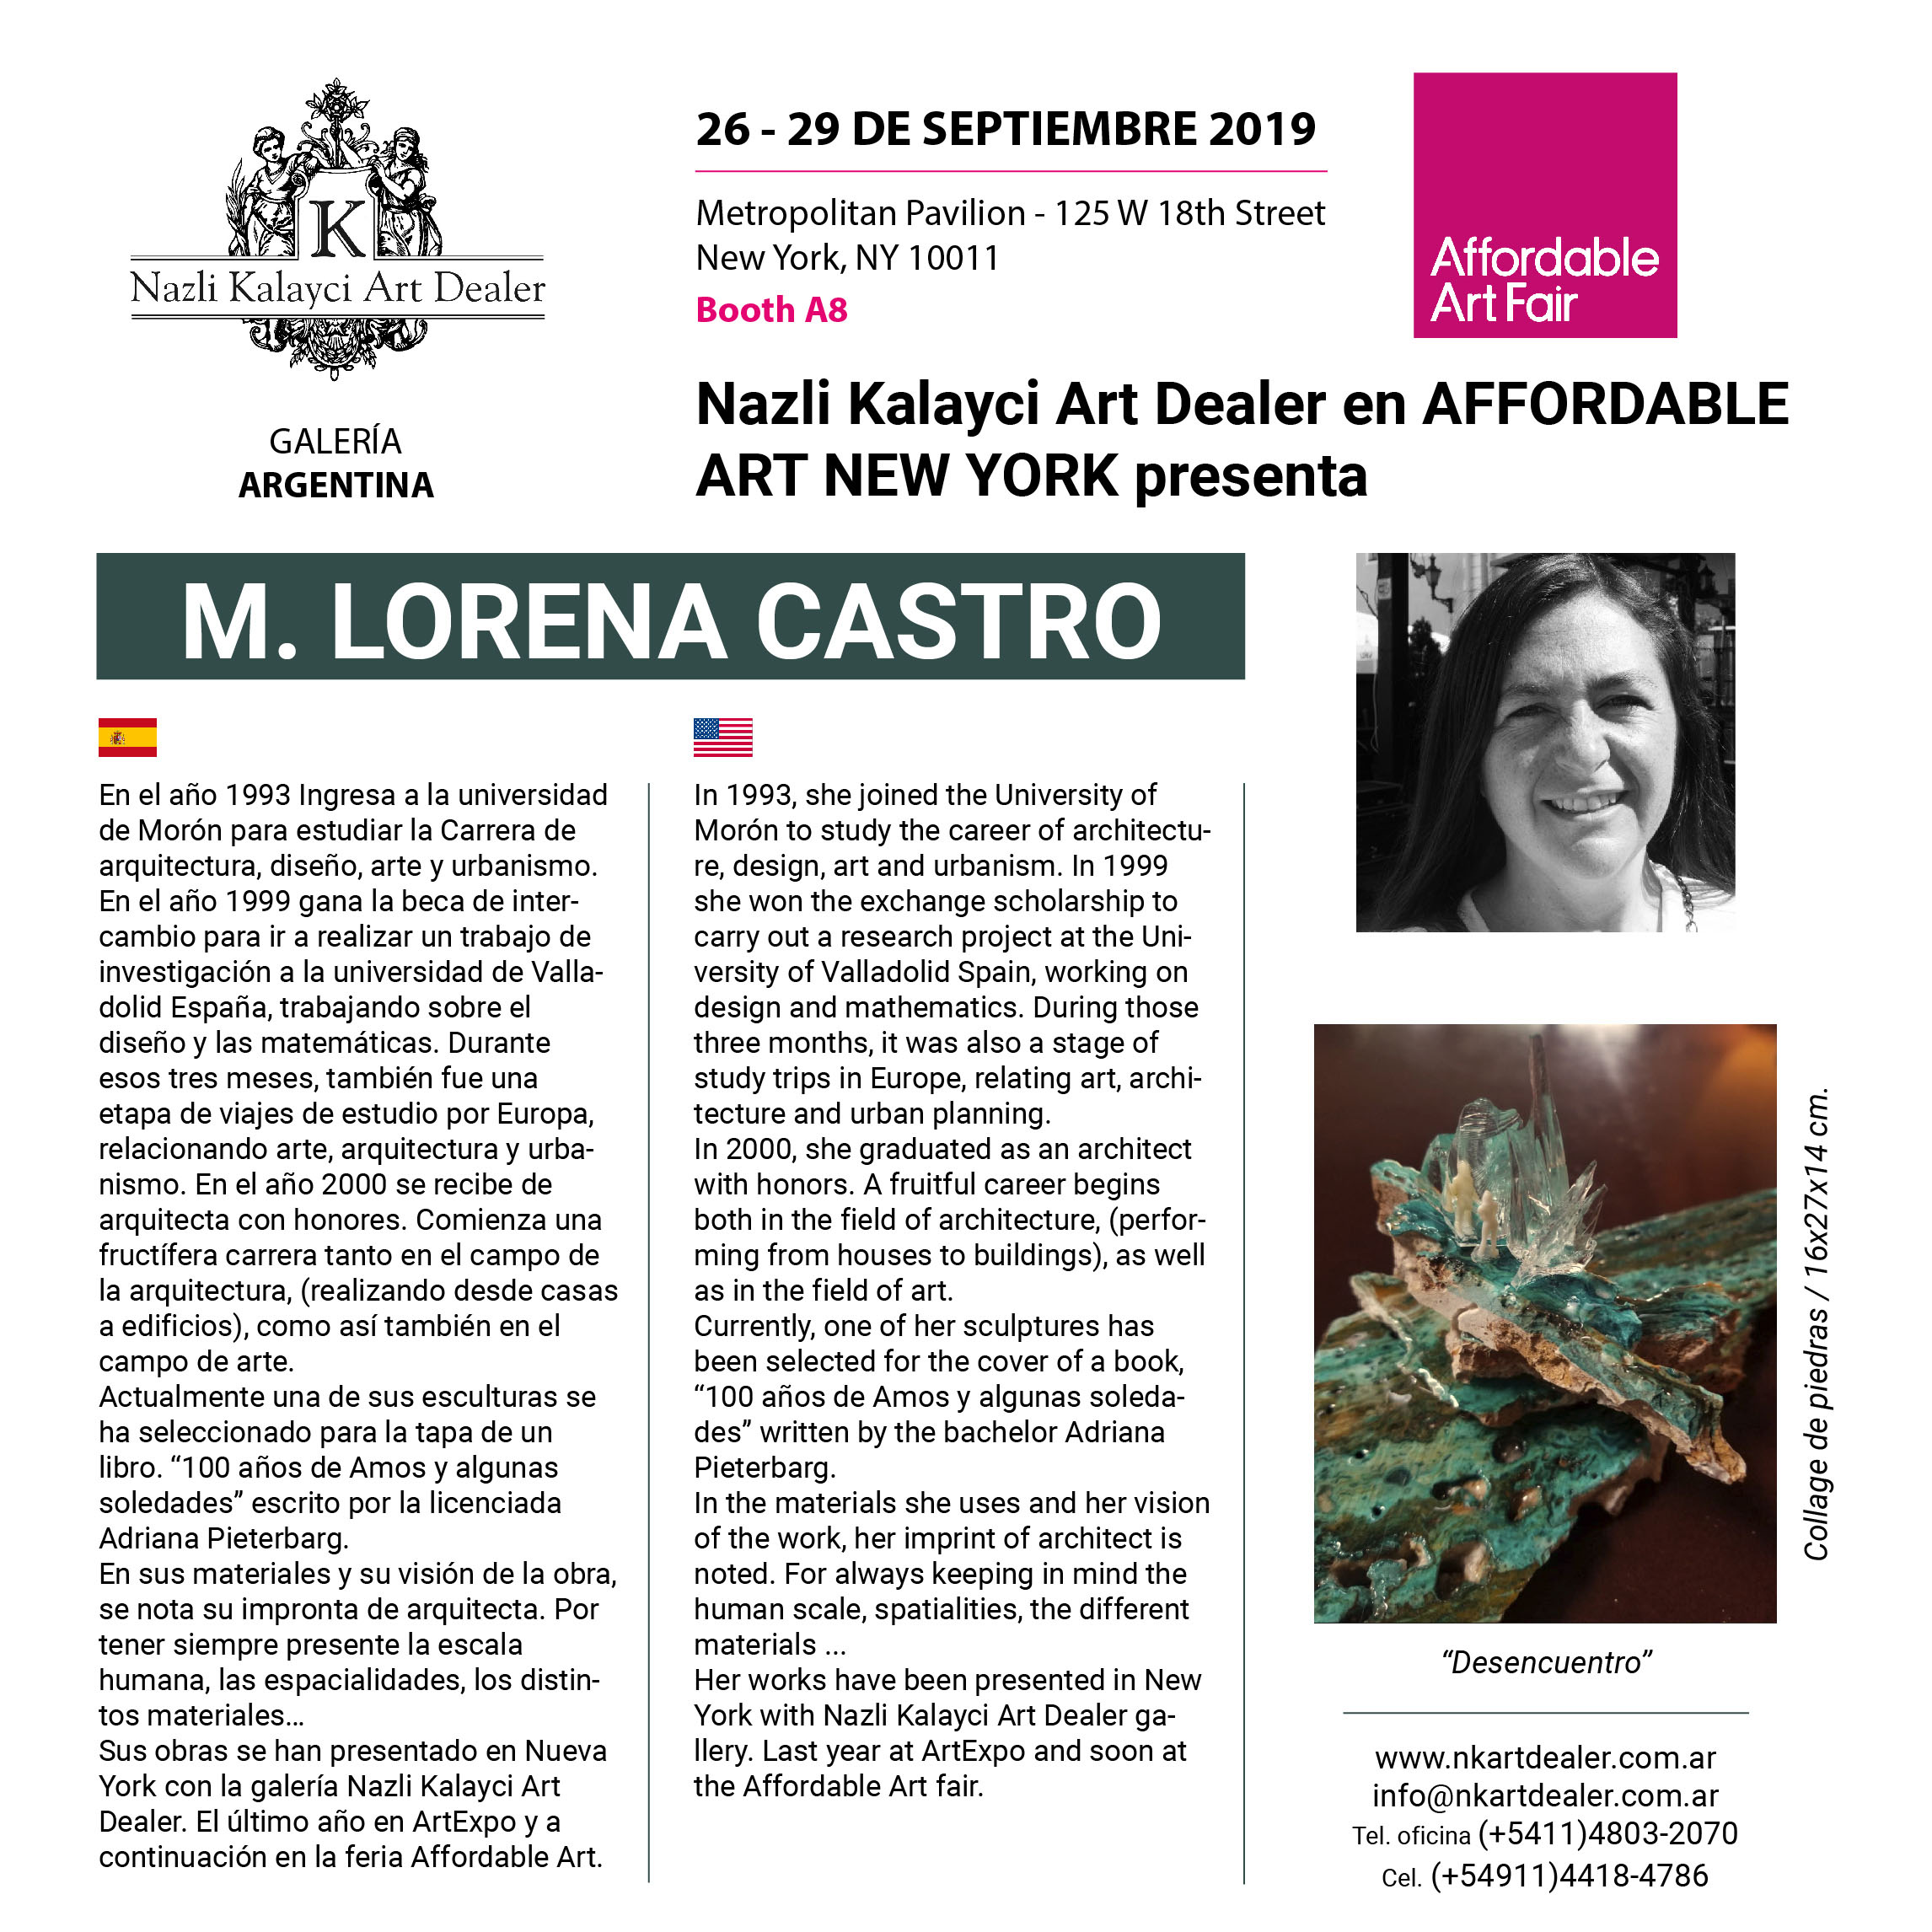 María Lorena Castro - Affordable Art